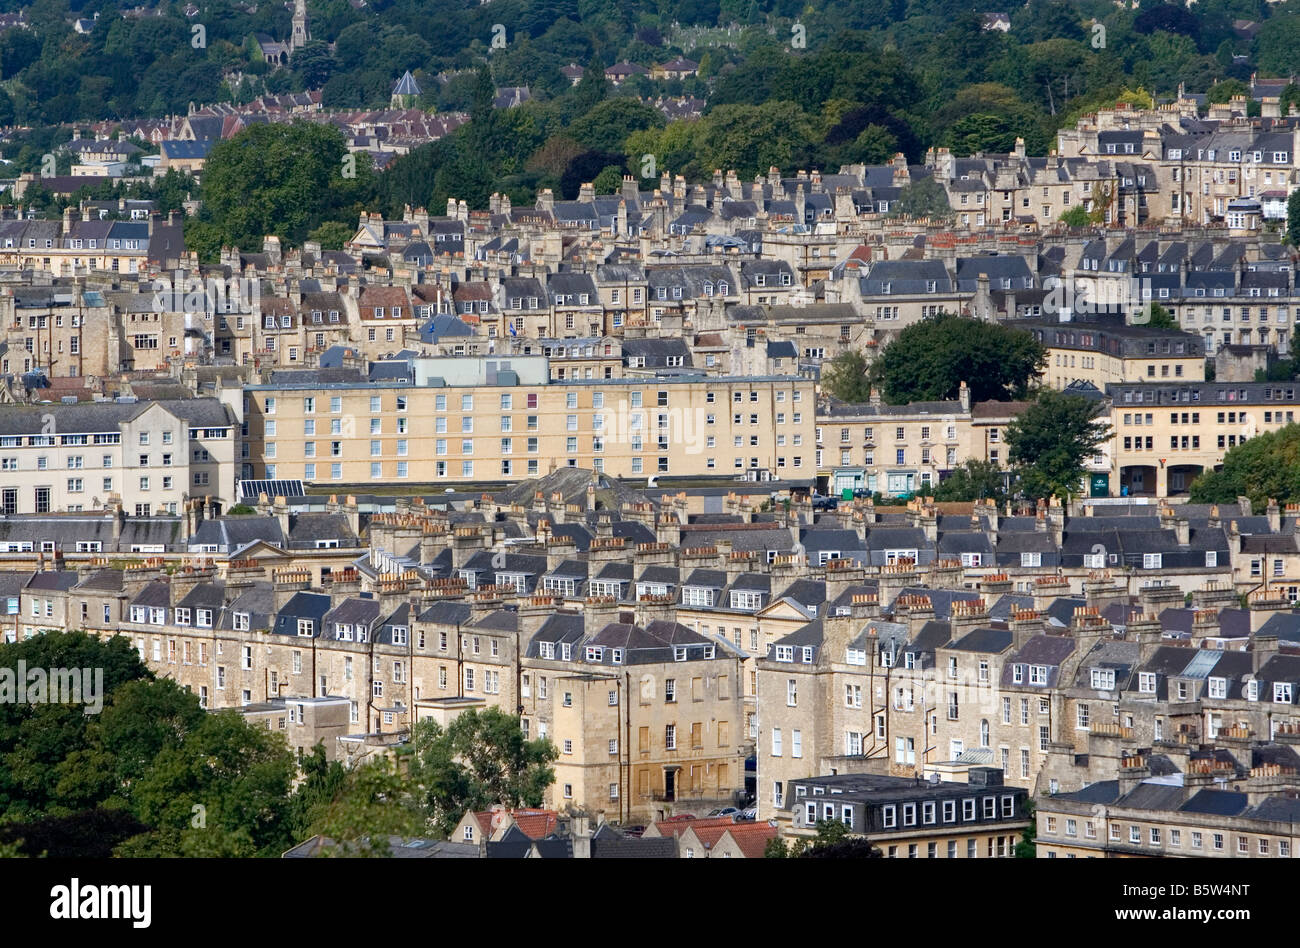 An overview of the city of Bath Somerset England - Stock Image